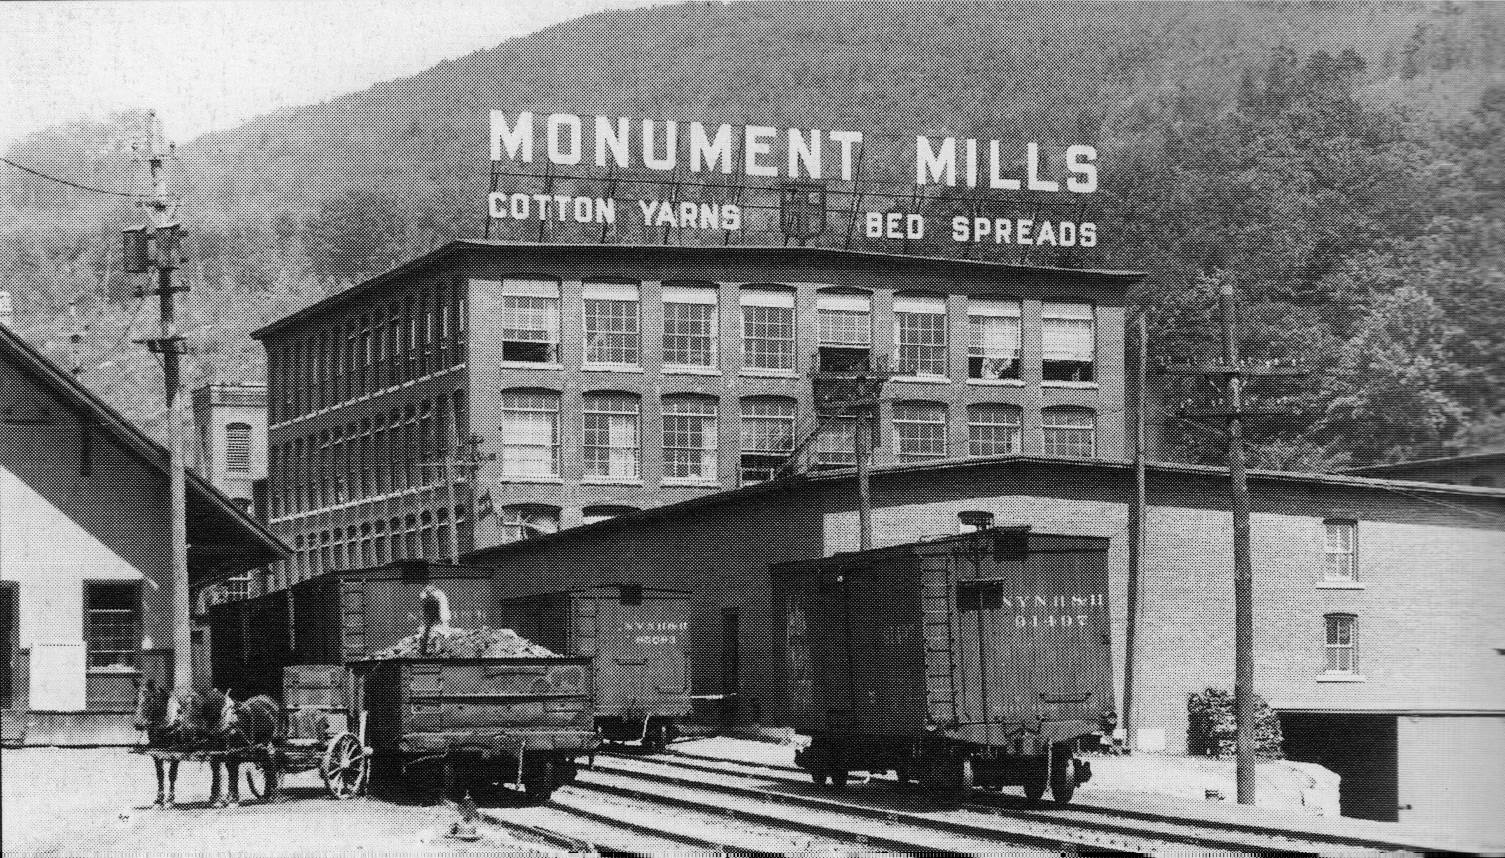 Housatonic+Monument+Mills.jpg